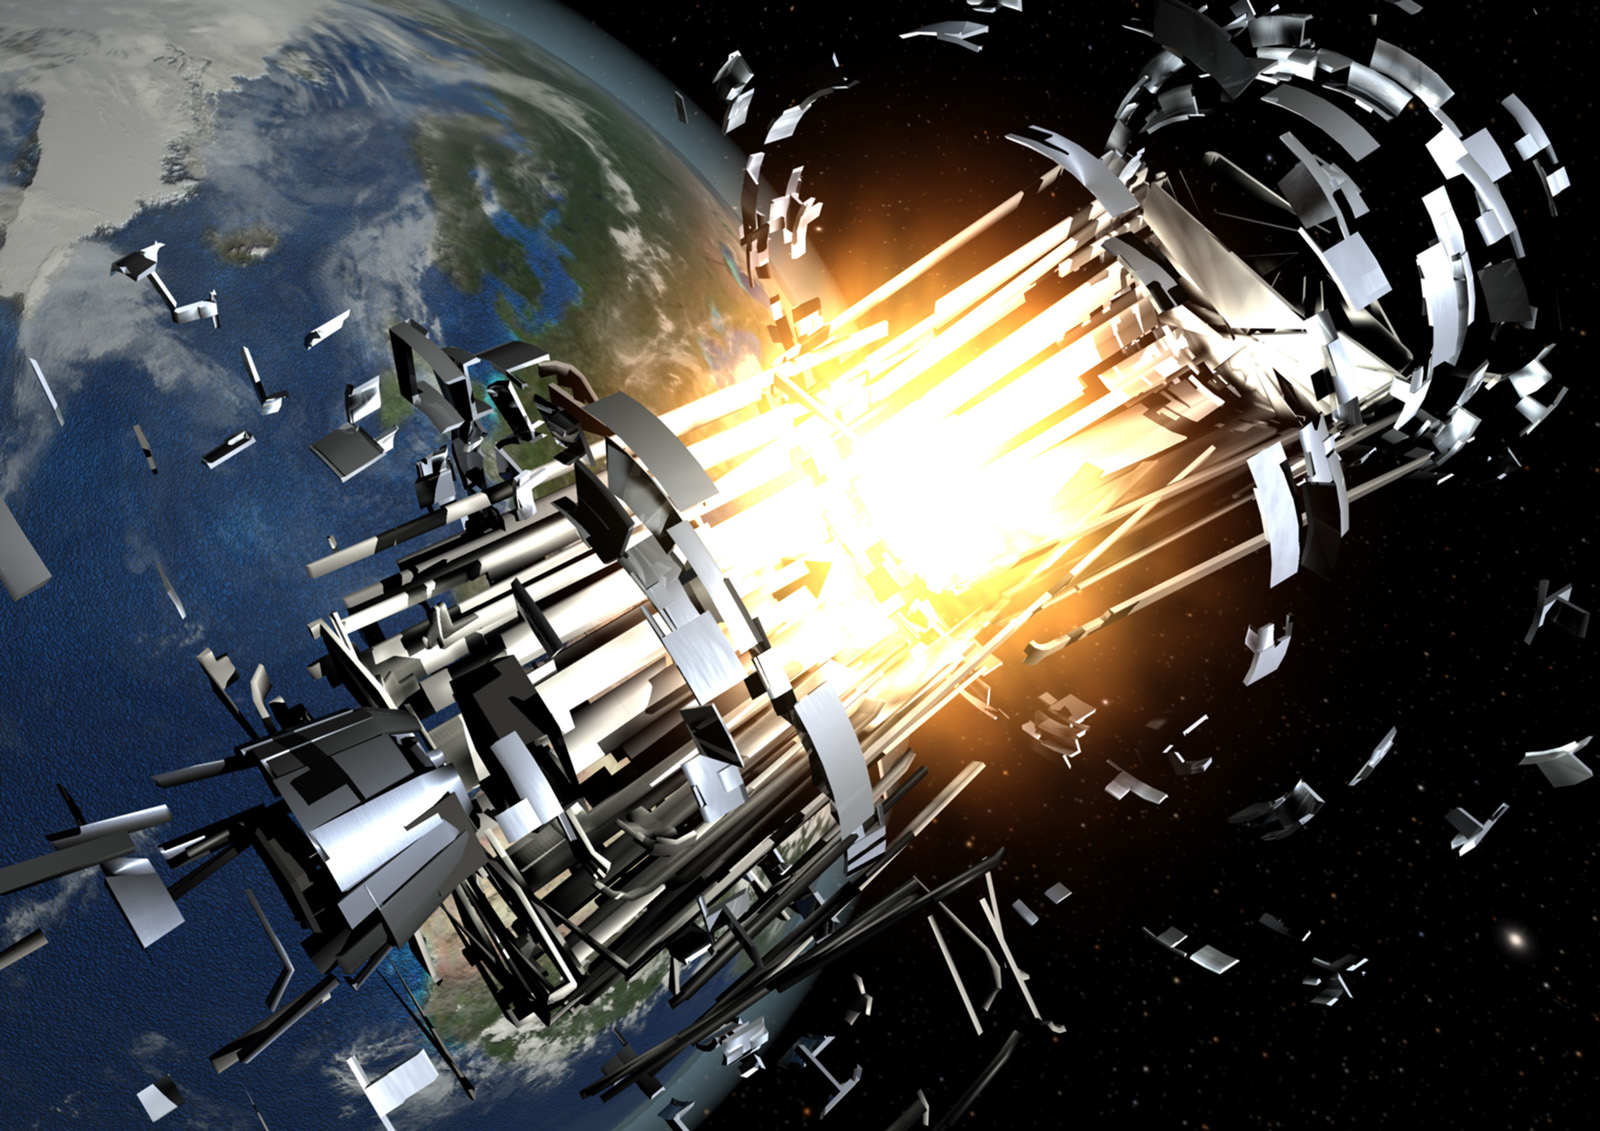 Recent Satellite Crashes Bring Space Junk Problem into Public Eye